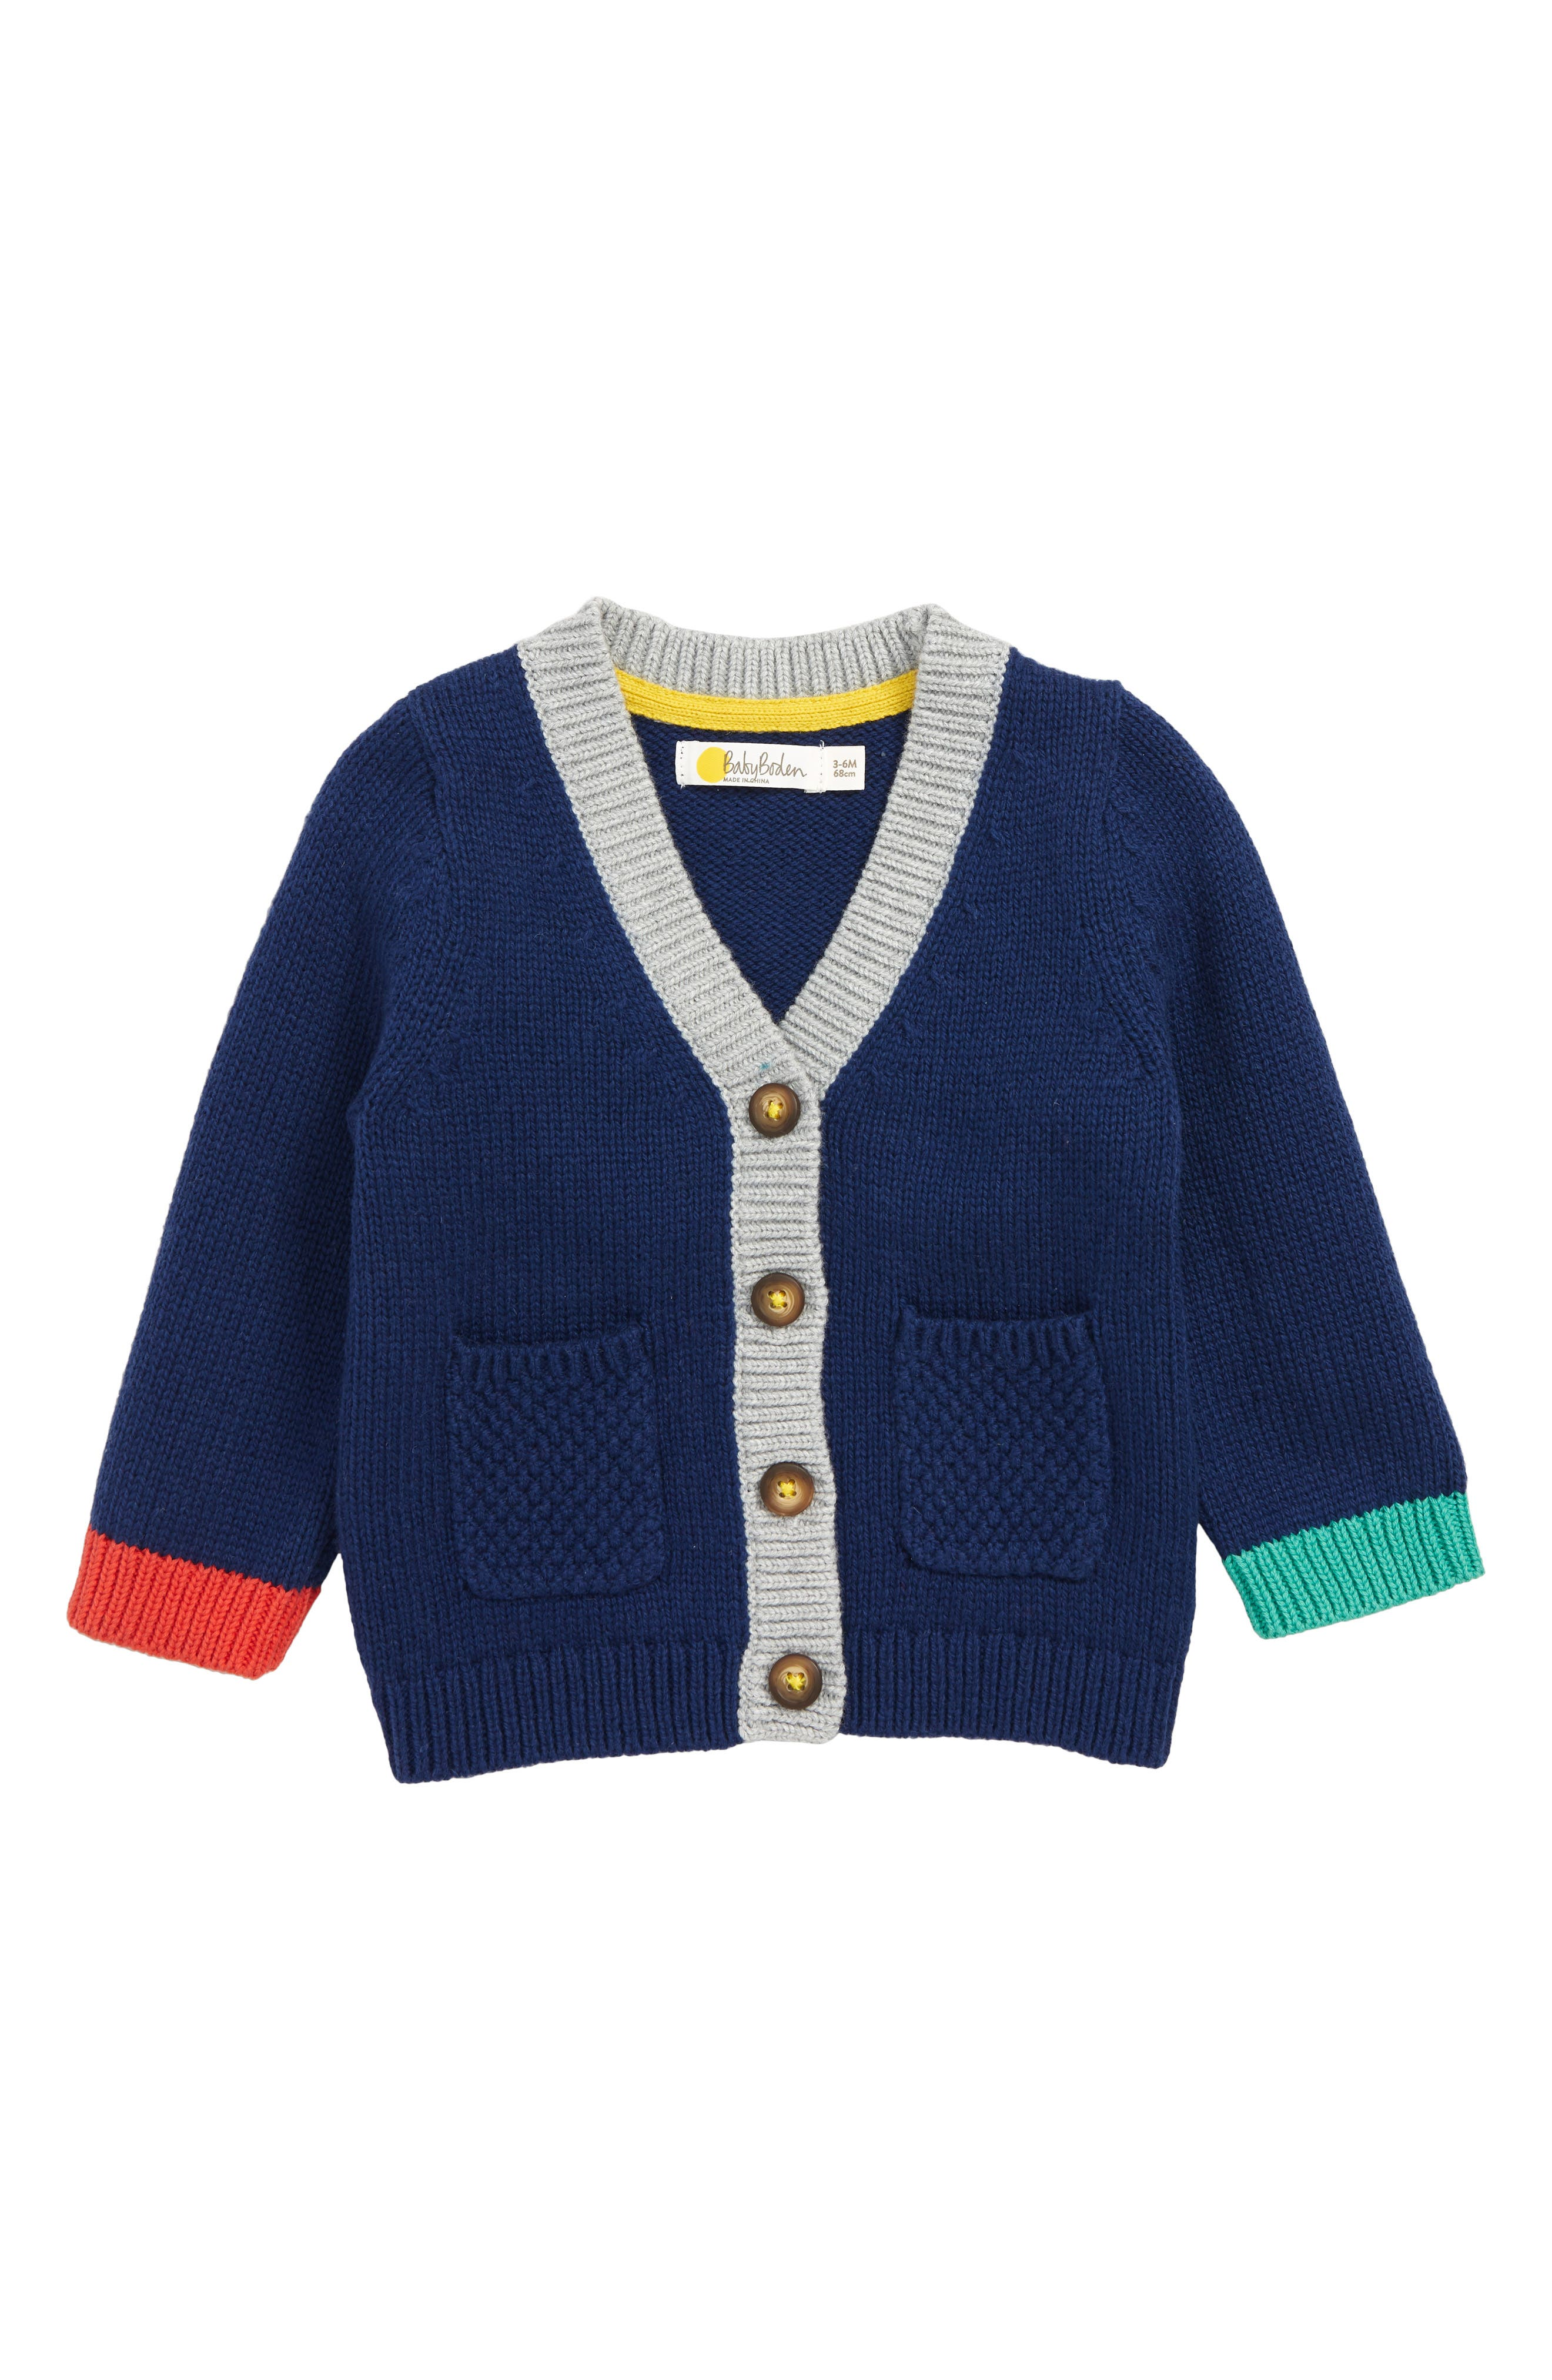 Toddler Boys Mini Boden Fun Cardigan Size 34Y  Blue